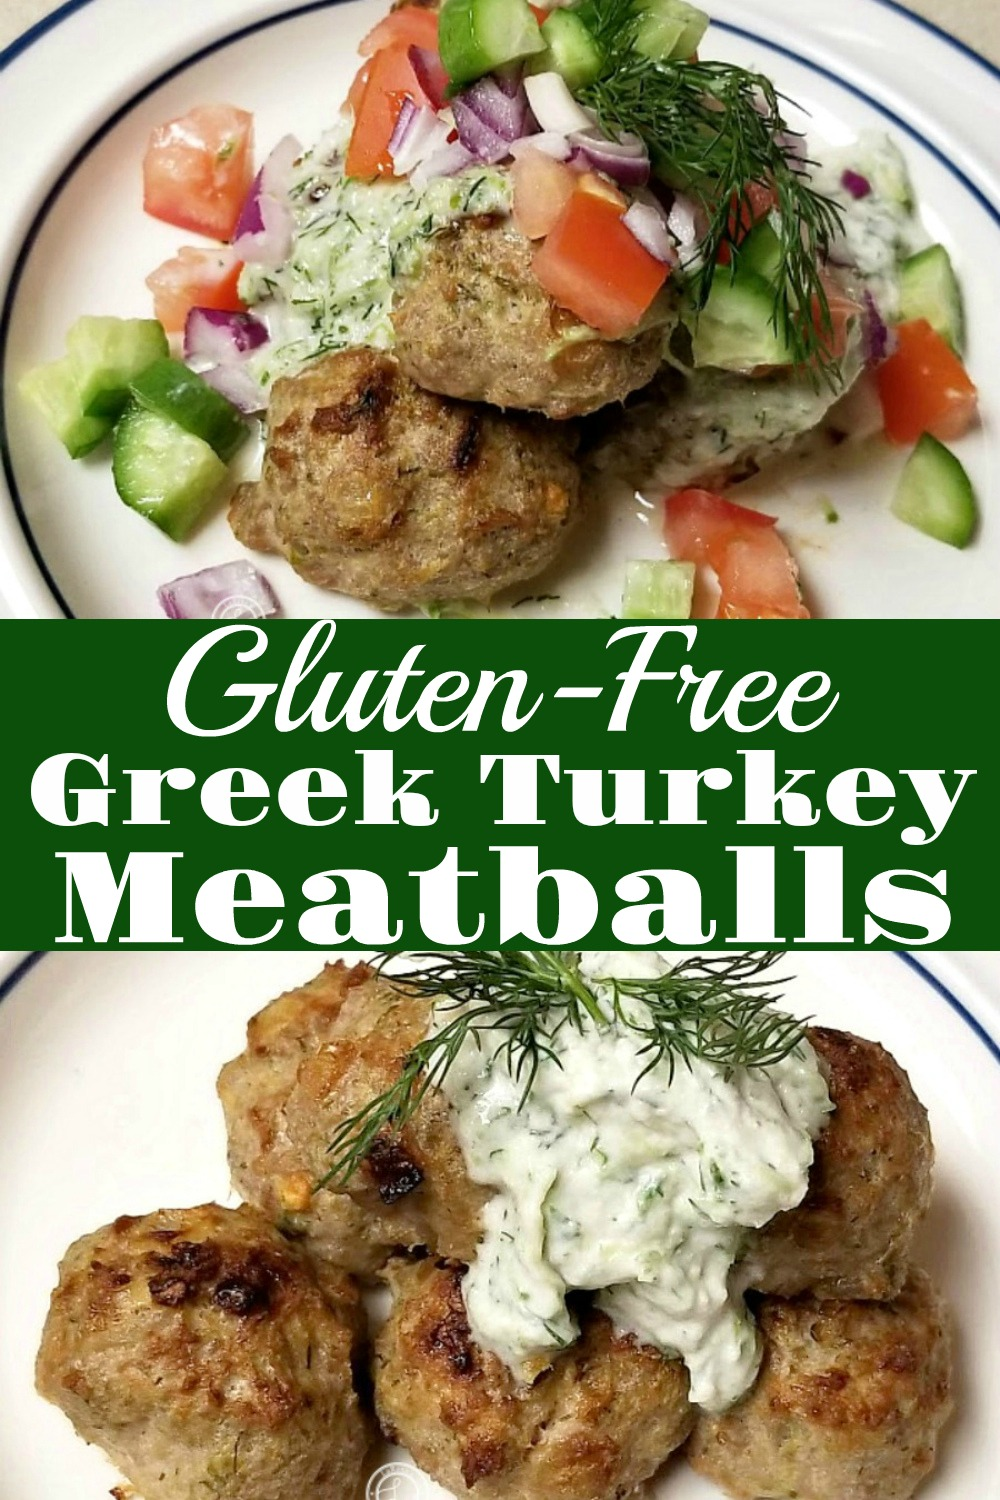 2 pictures of Gluten-Free Greek Turkey Meatballs. One of Meatballs and Tzatziki sauce with dill. One of a pile of meatballs with chopped cucumbers, tomatoes, red onions and tzatziki sauce with dill.